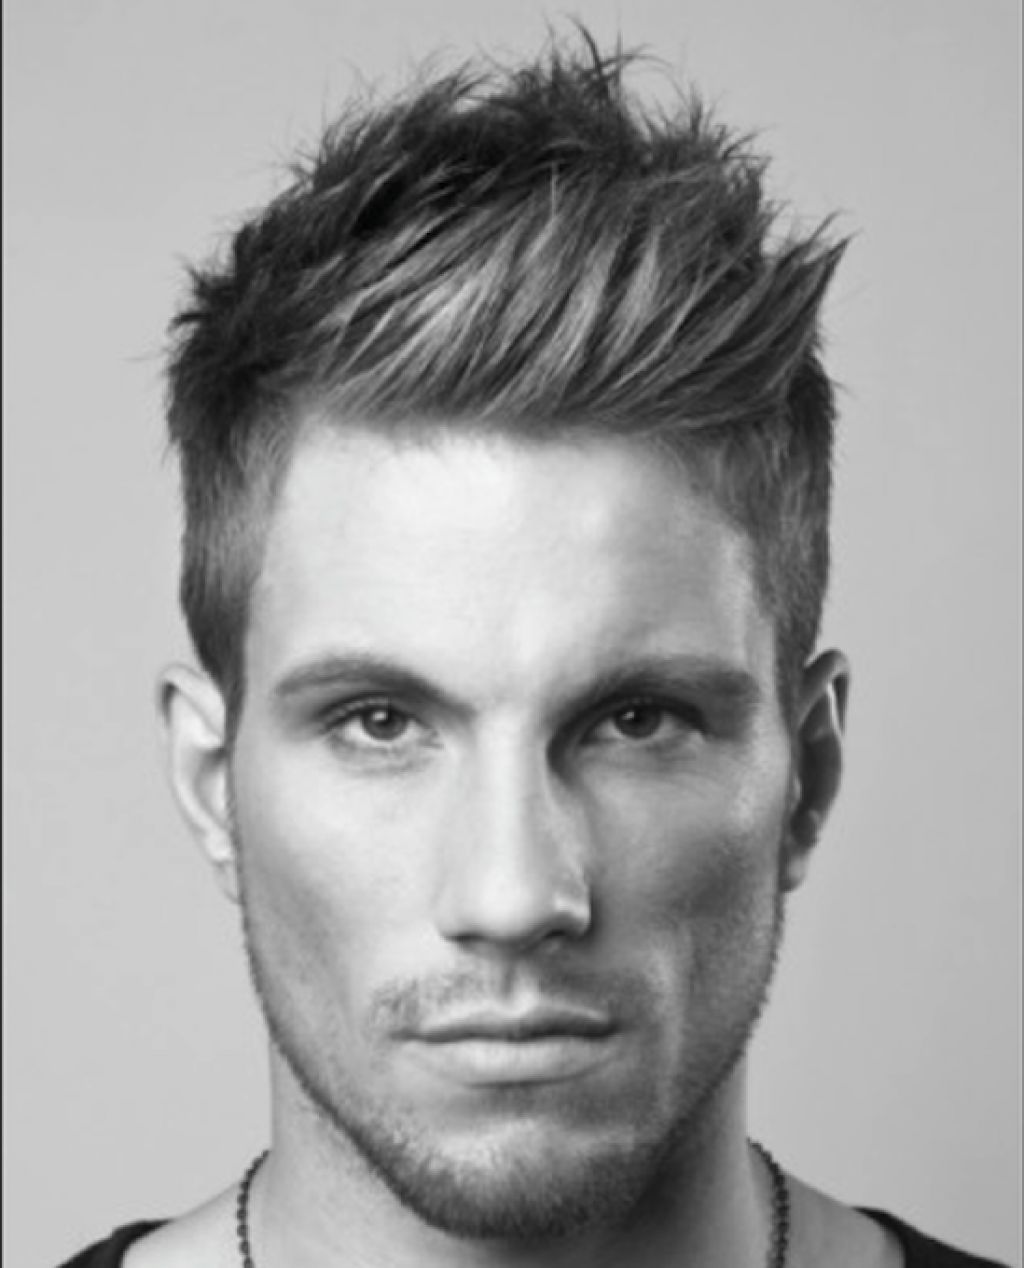 10 hairstyles will suit men with oval faces | e-bop | hair styles